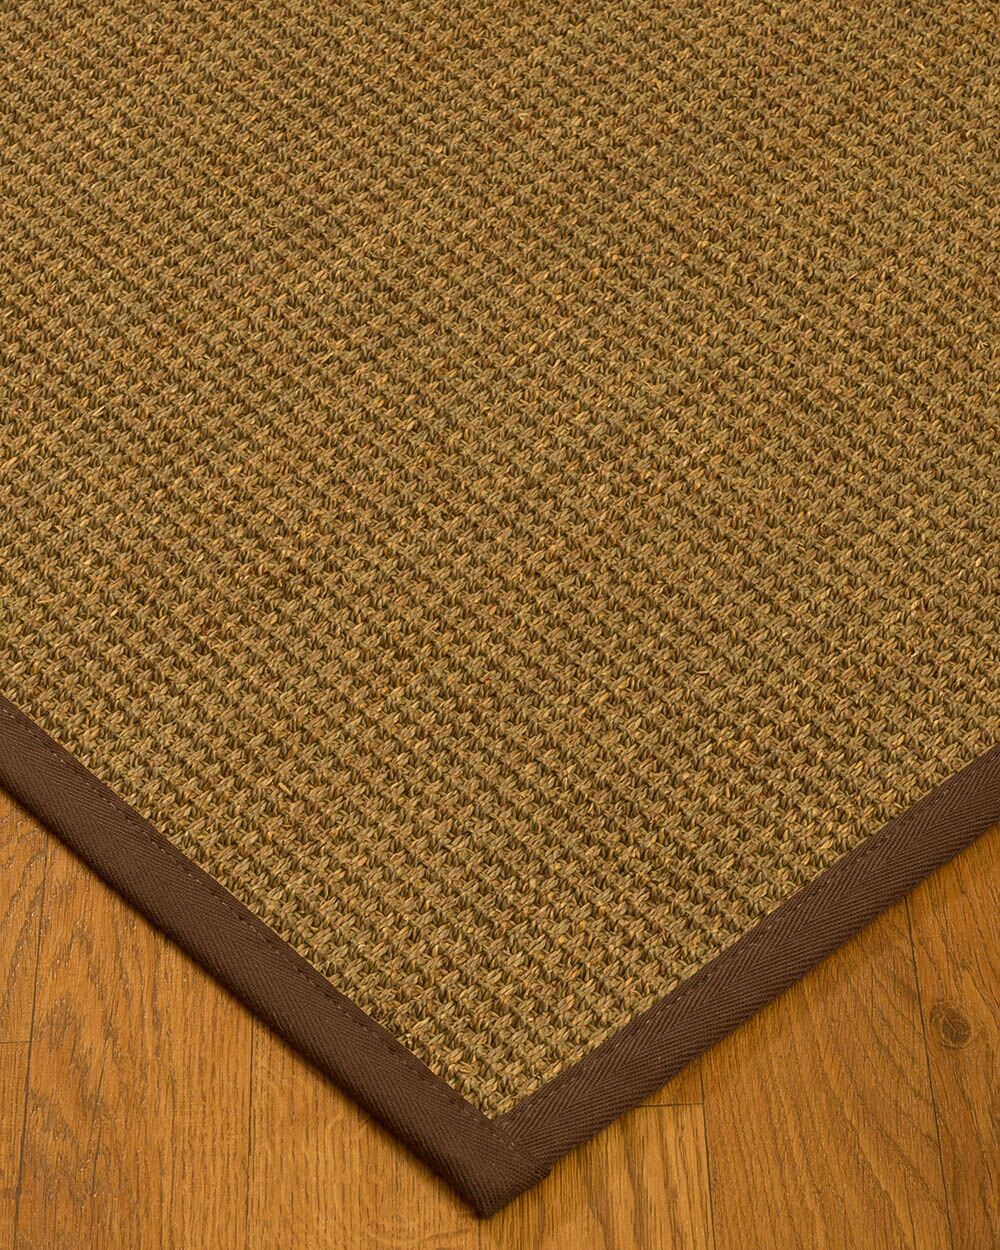 Kentwood Border Hand-Woven Beige/Brown Area Rug Rug Size: Rectangle 4' x 6', Rug Pad Included: Yes